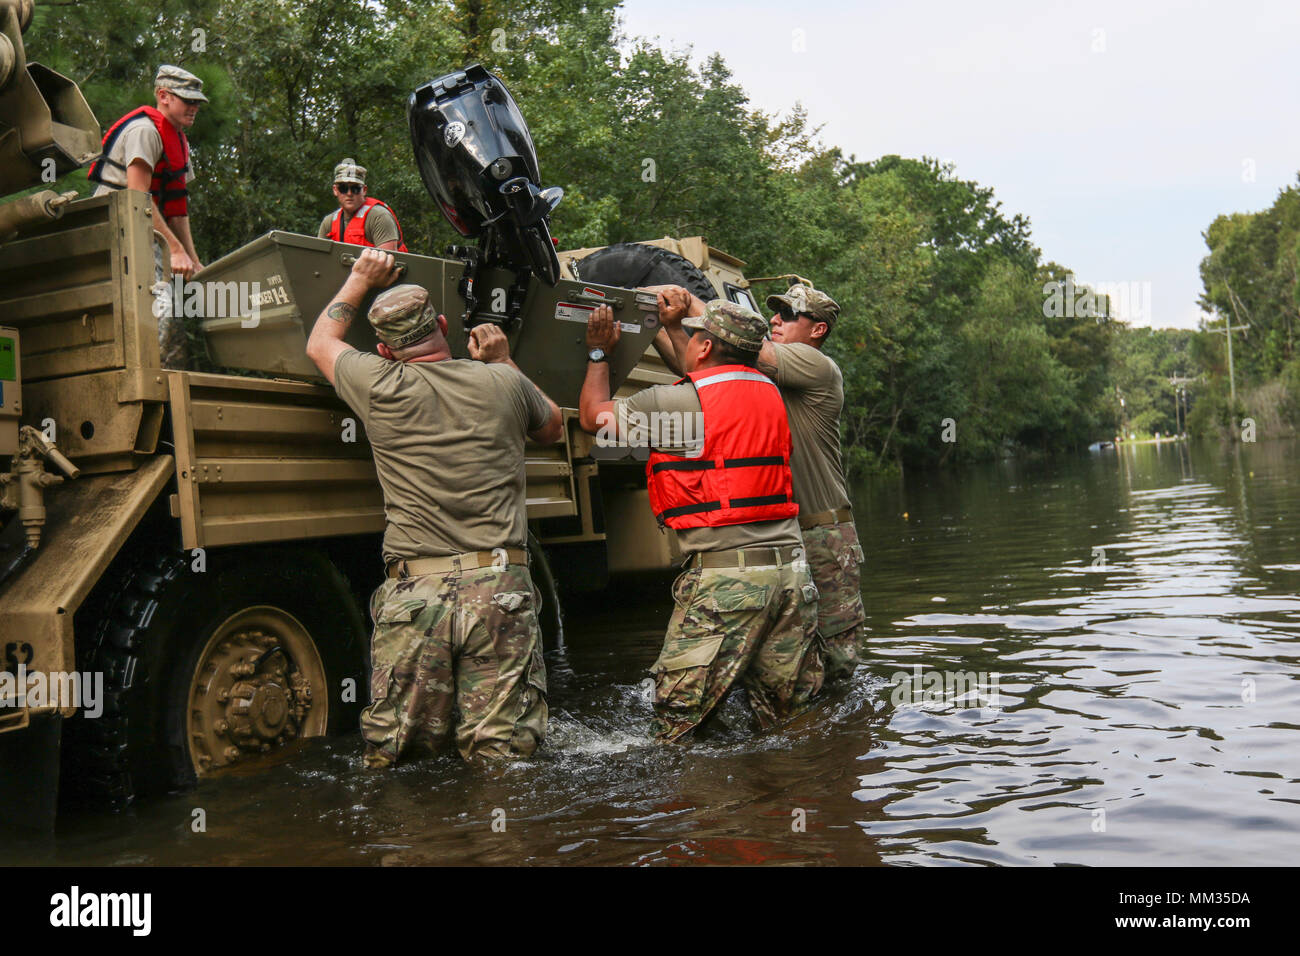 Texas National Guardsmen unload a boat off of a Light Medium Tactical Vehicle (LMTV) to traverse high water through flooded neighborhoods in Vidor, Texas, Sept. 3, 2017. The boats were used when the LMTVs were not able to pass through certain areas. The Guardsmen continue to provide relief to those who were affected by Hurricane Harvey. The Department of Defense is conducting Defense Support of Civil Authorities operations in response to the effects of Hurricane Harvey. DSCA operations are part of the DOD's response capability to assist civilian responders in saving lives, relieving human suff - Stock Image